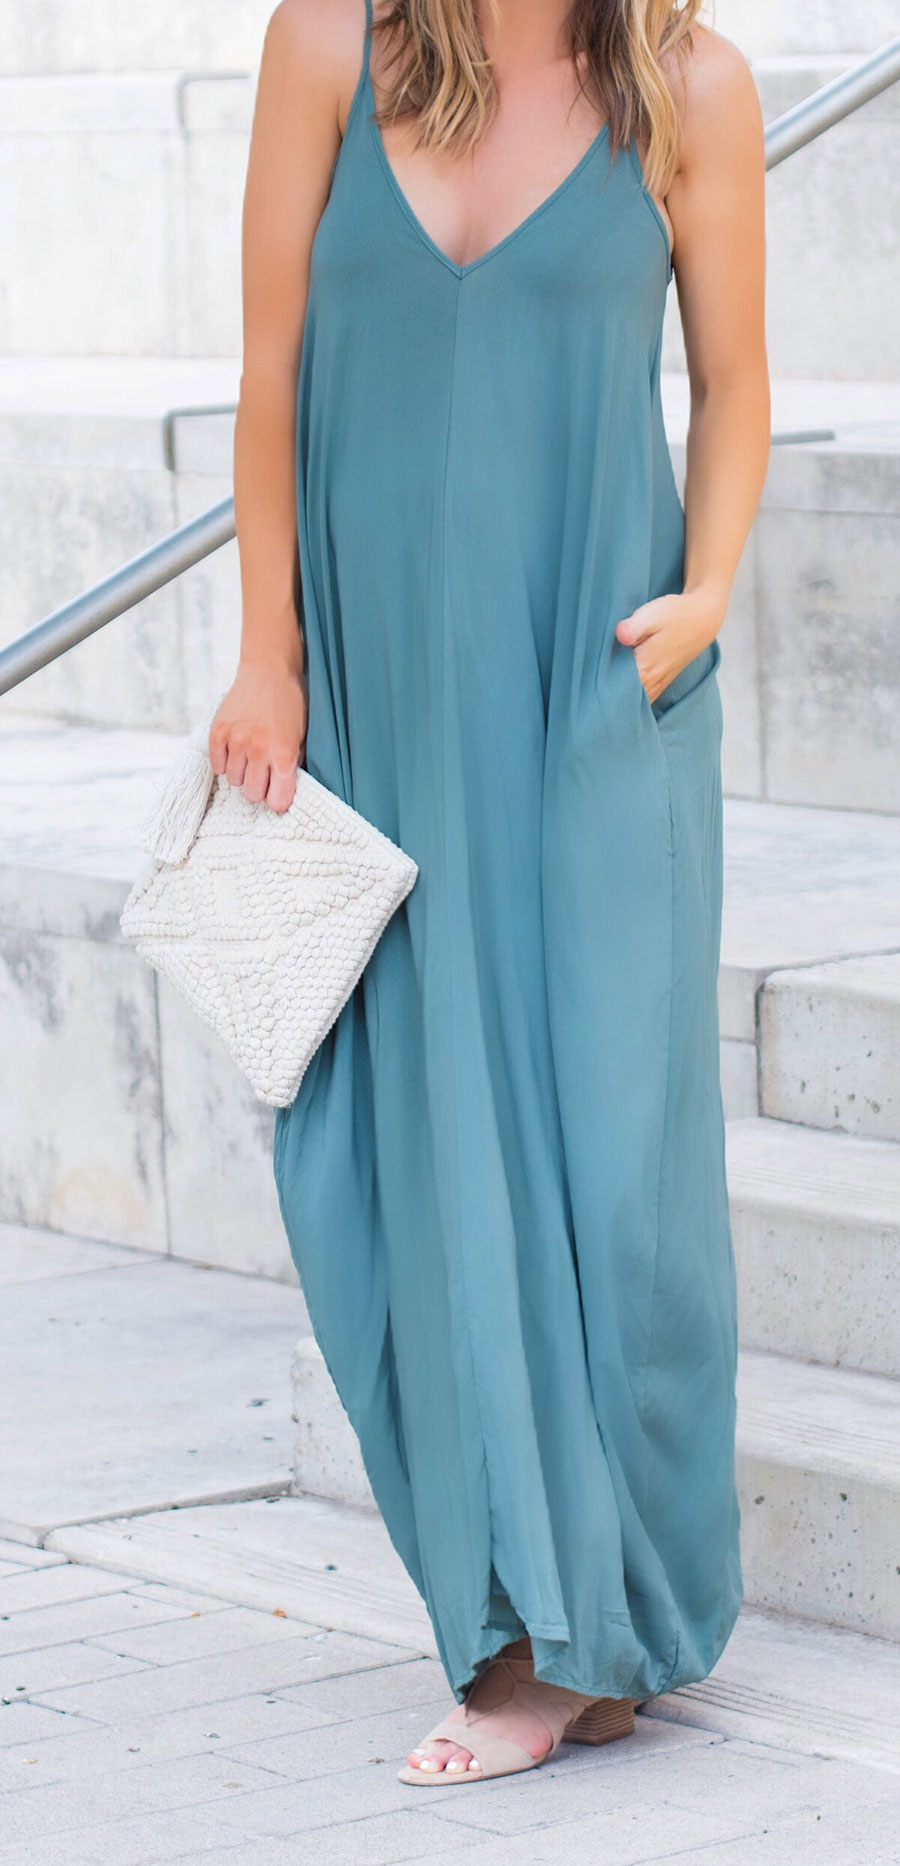 Nordstrom green maxi dress with pockets